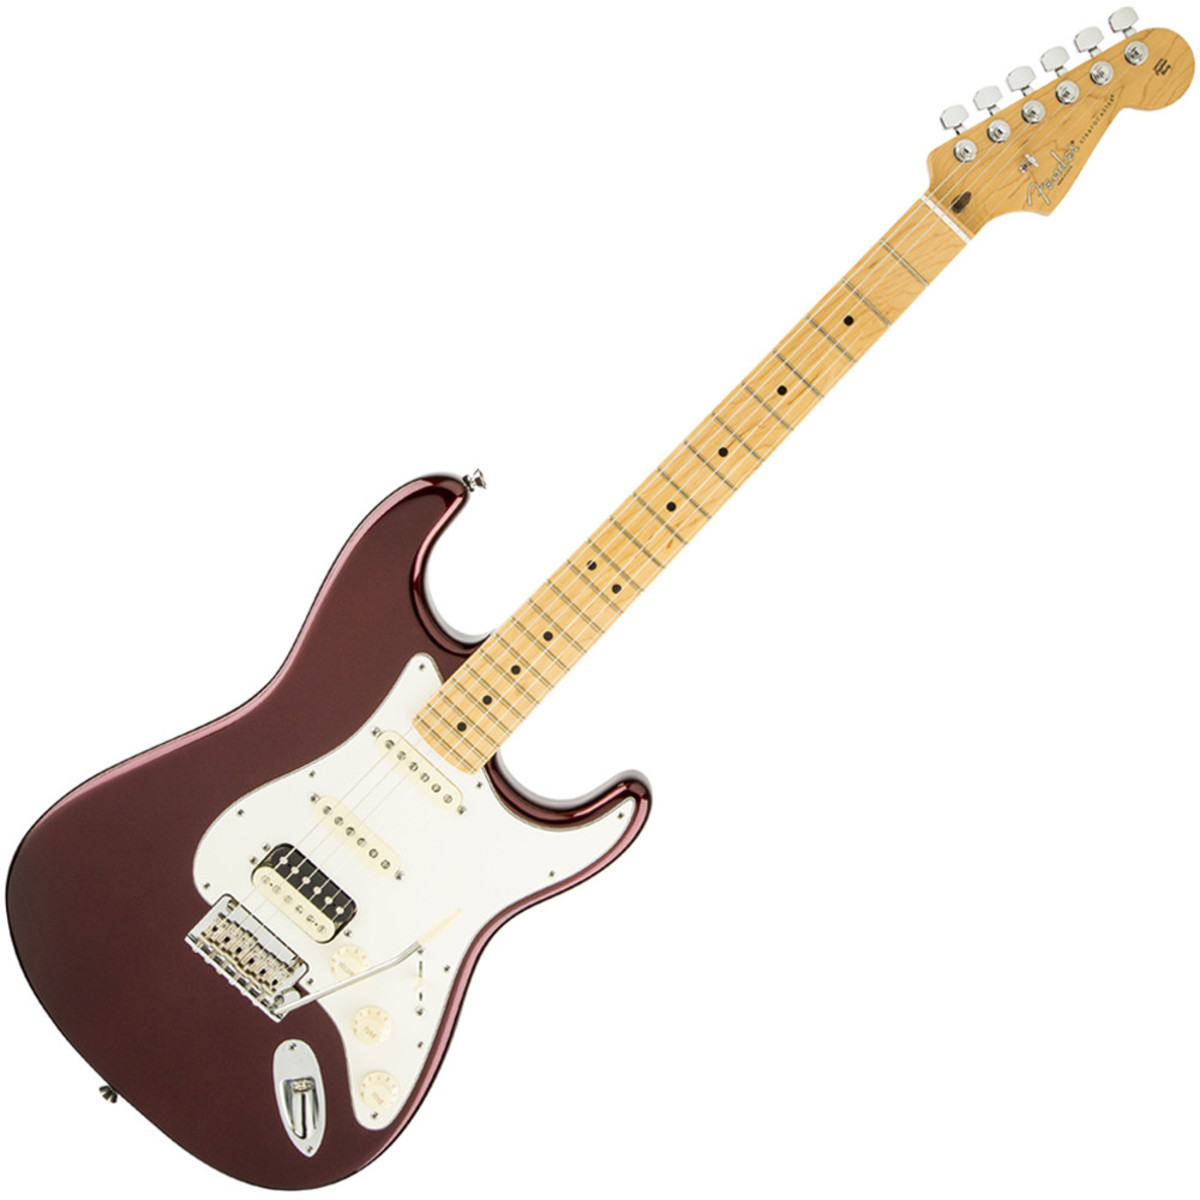 Disc Fender American Standard Strat Hss Shawbucker Bordeaux Micro Switch Wiring Diagram Pickups Mn Metallic